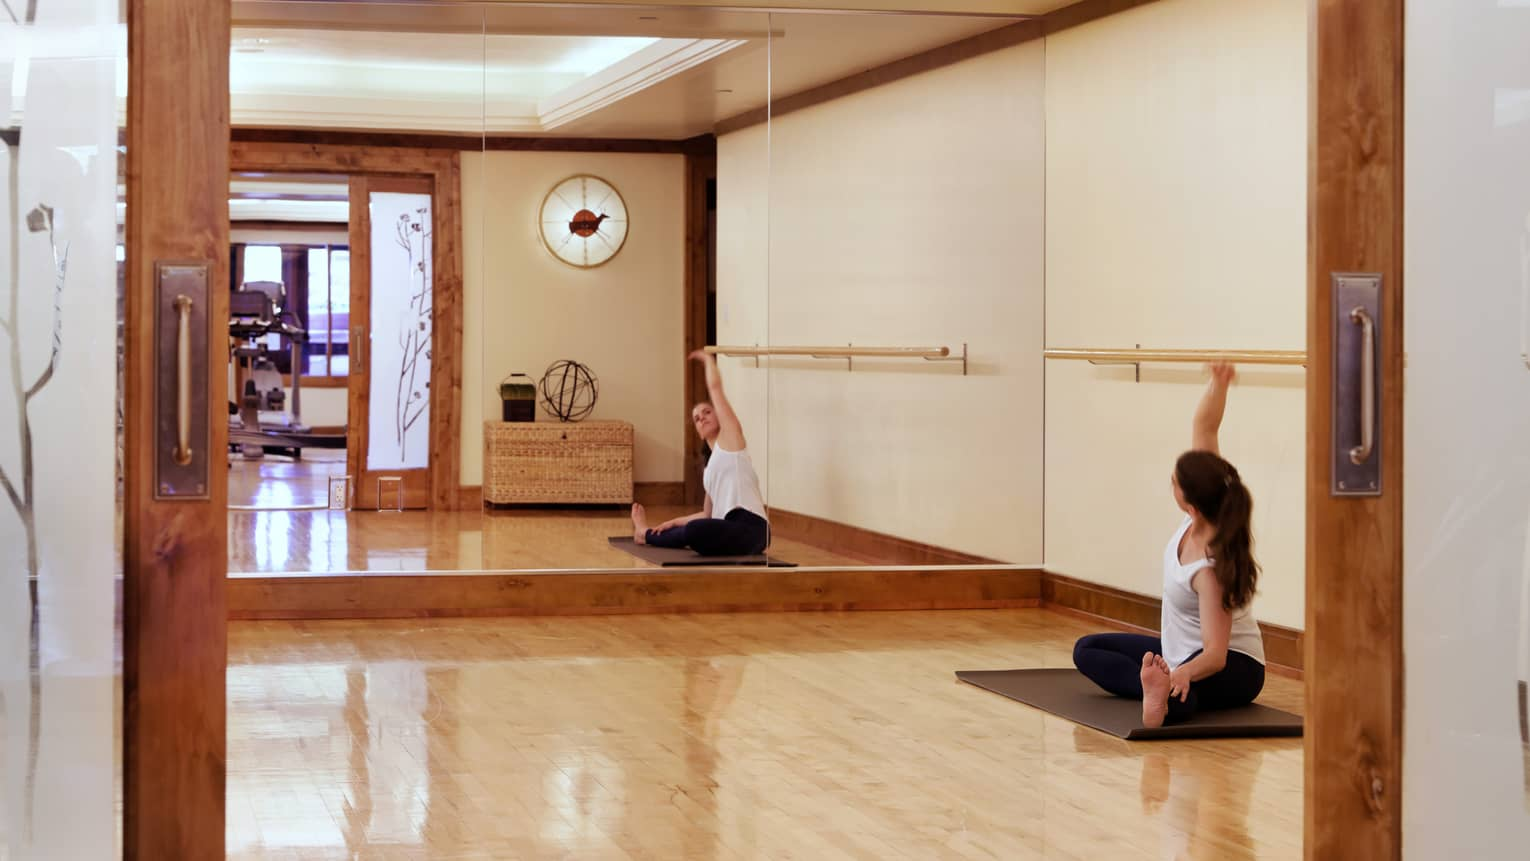 A woman stretches on a yoga mat within a workout studio with a mirrored wall